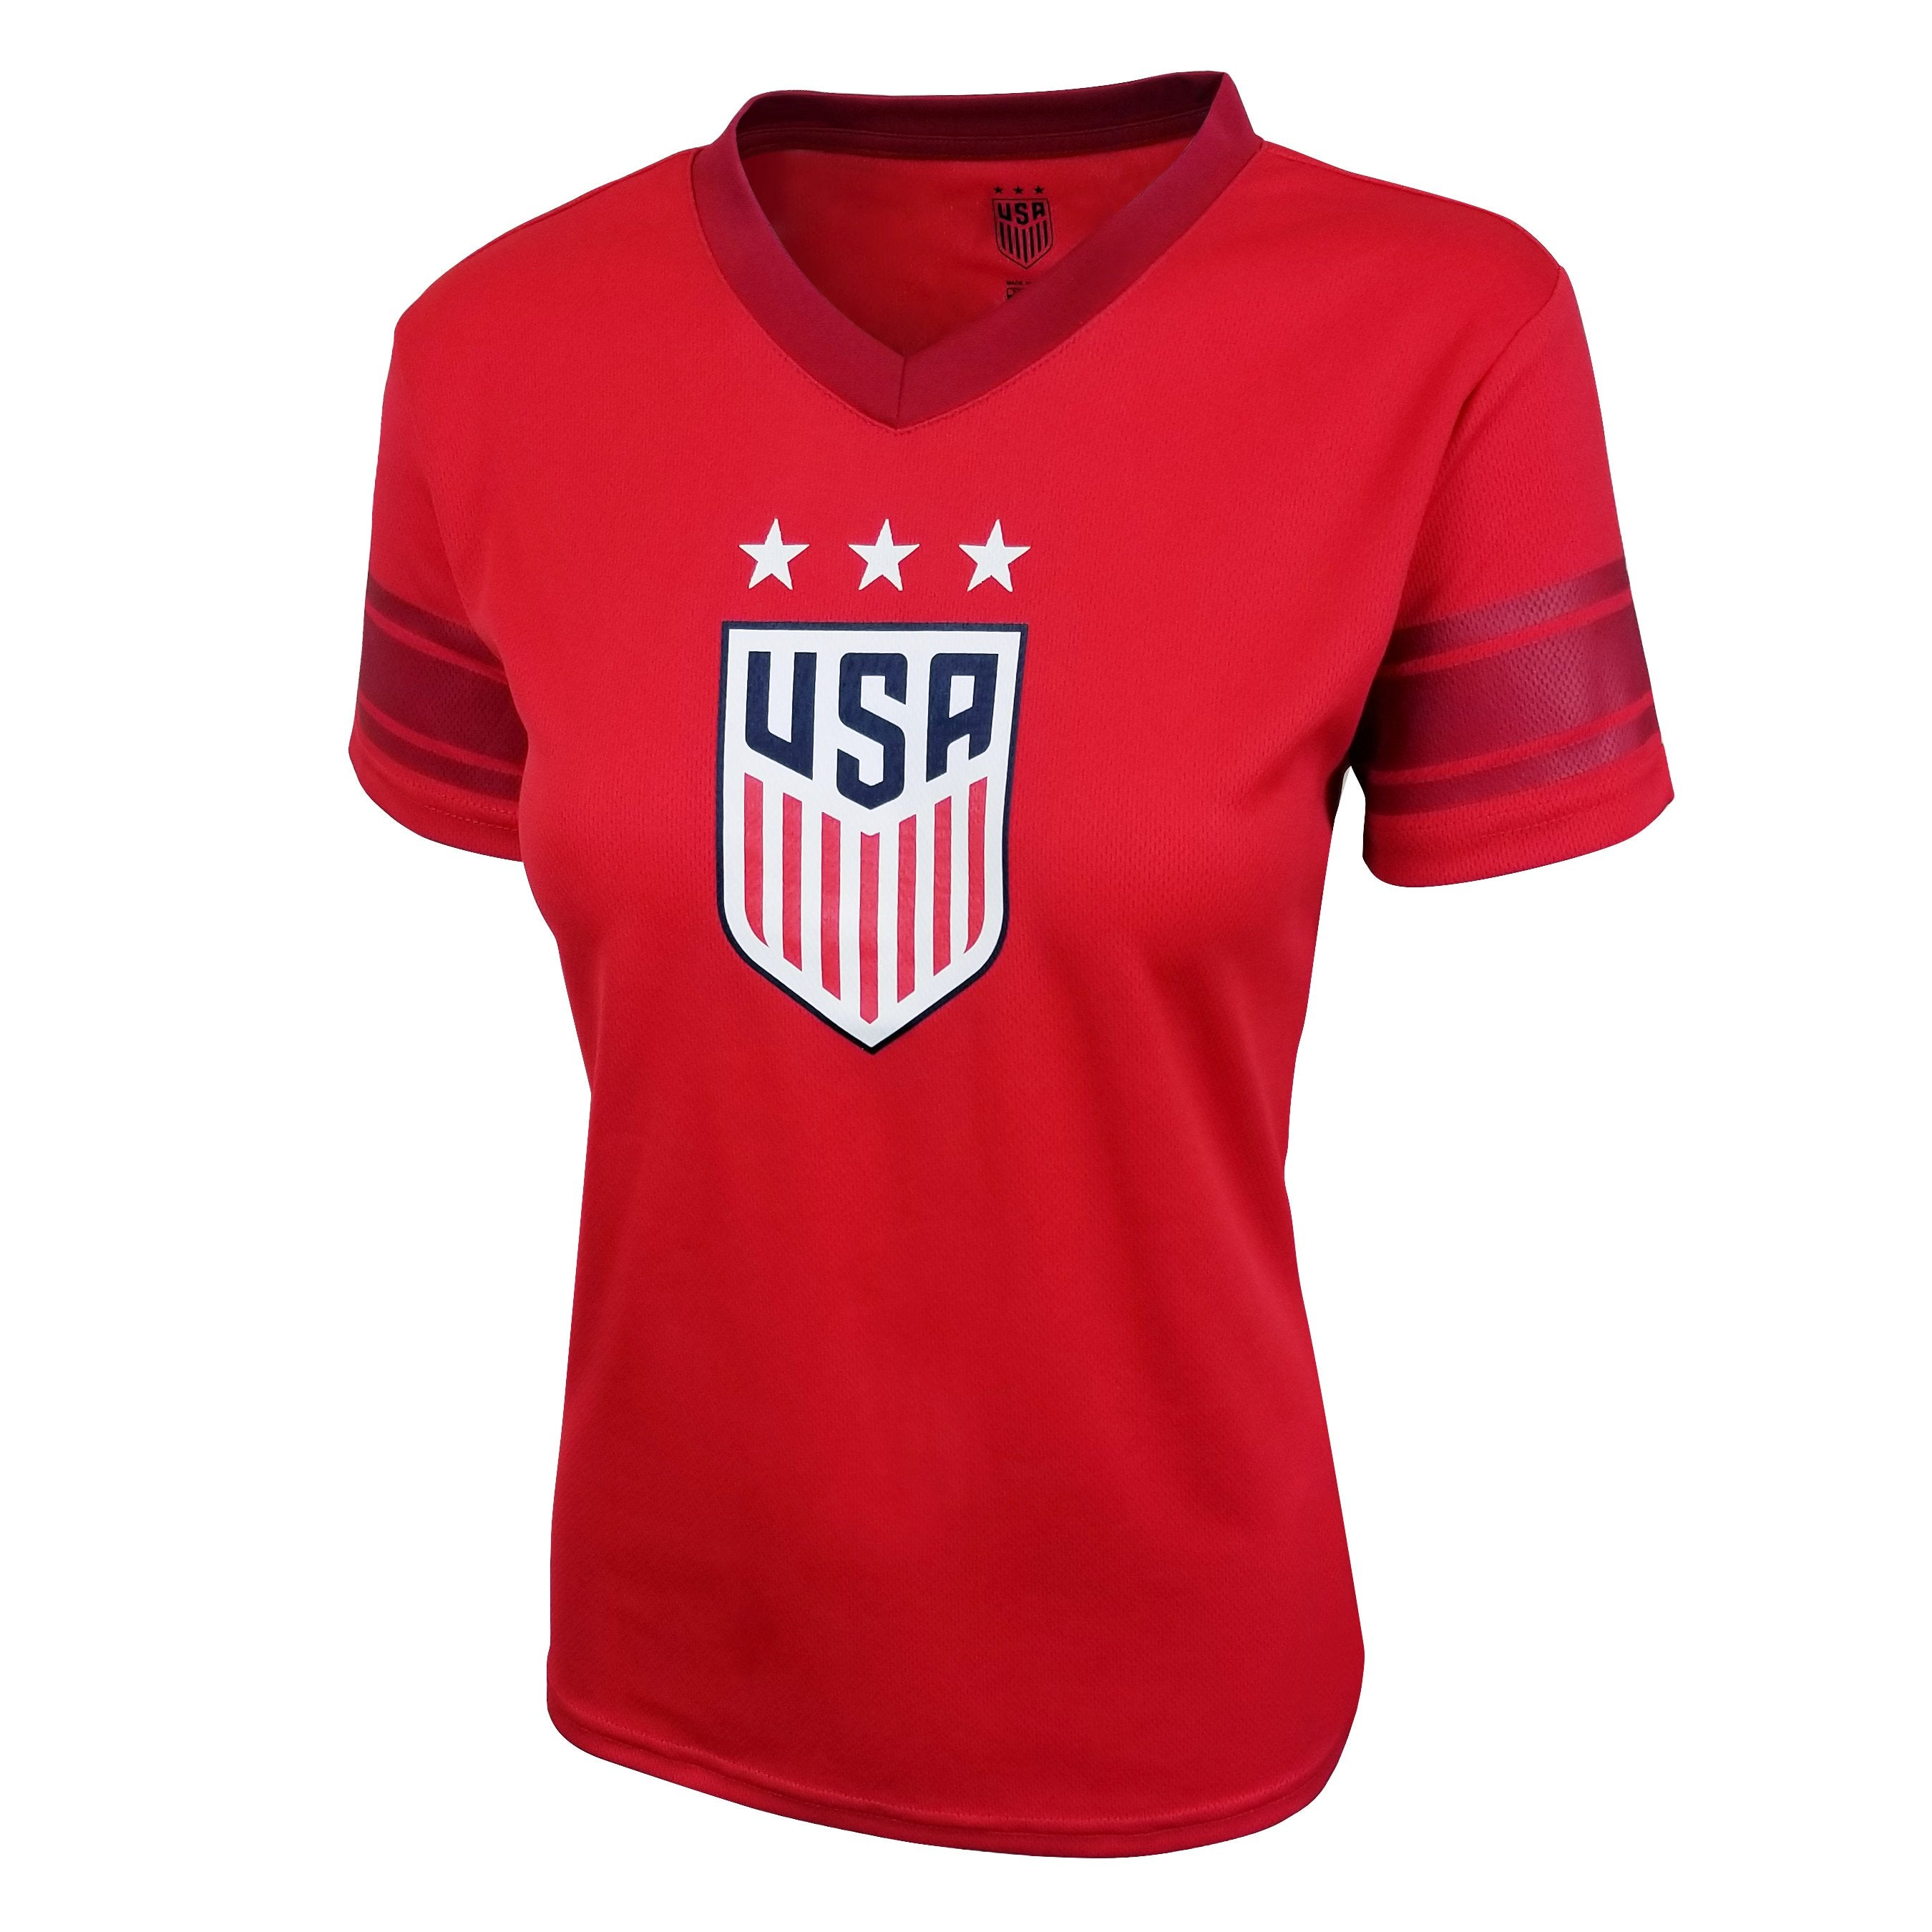 U.S. Soccer Julie Ertz Women's Polymesh Football Tee